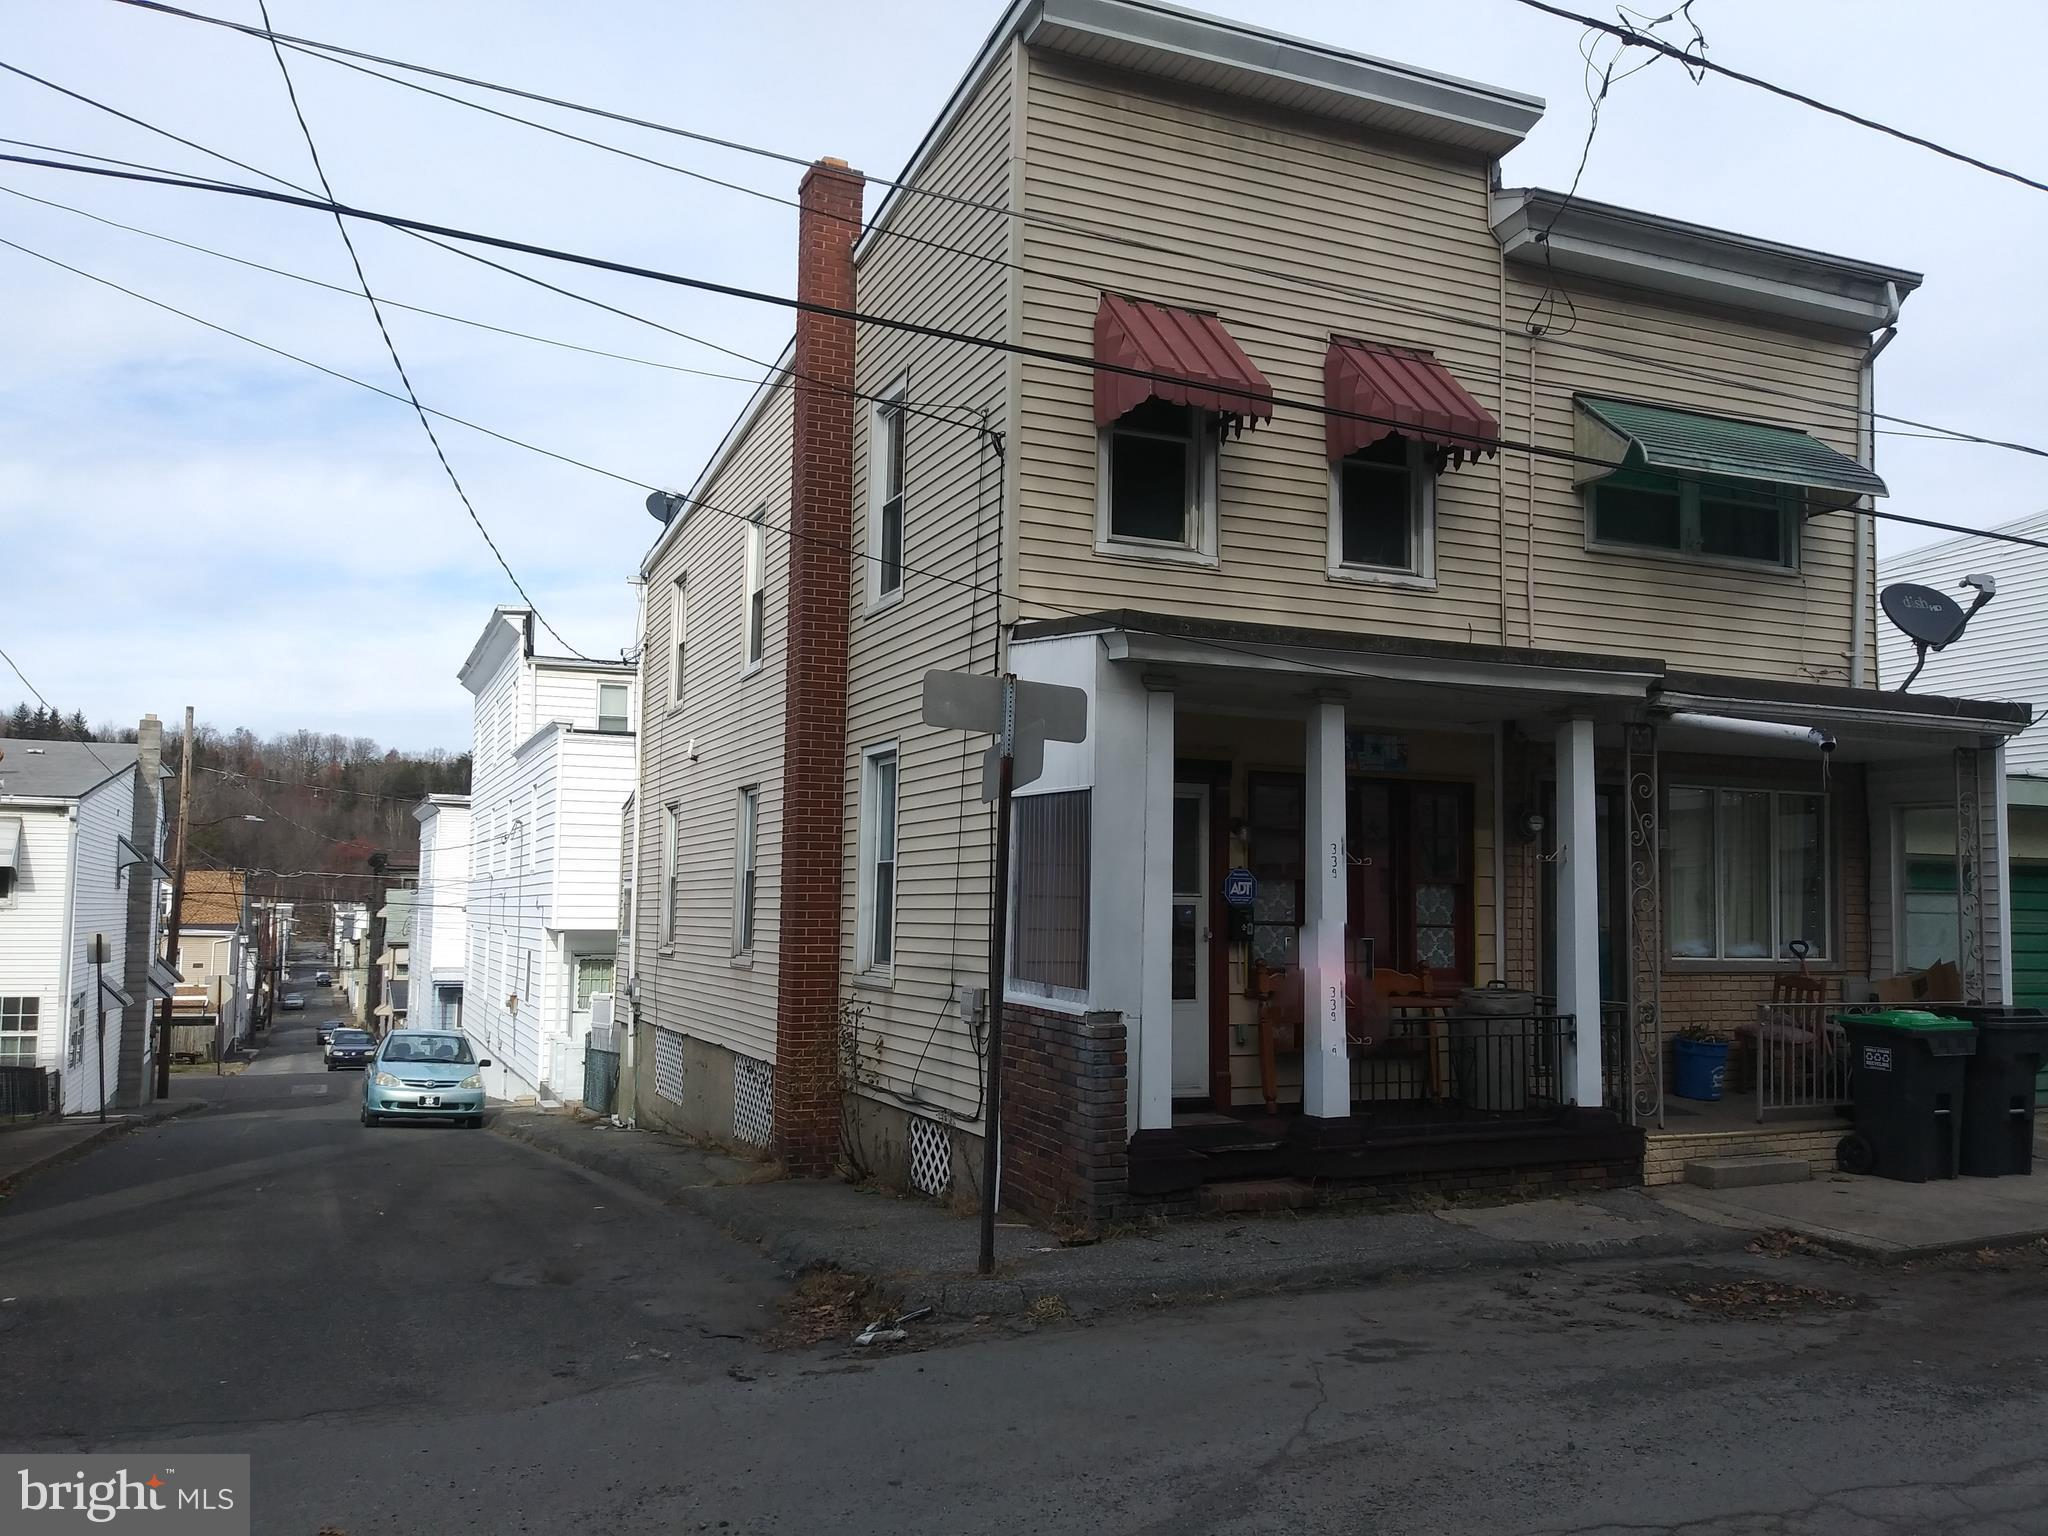 339 W MAPLE STREET, MAHANOY CITY, PA 17948